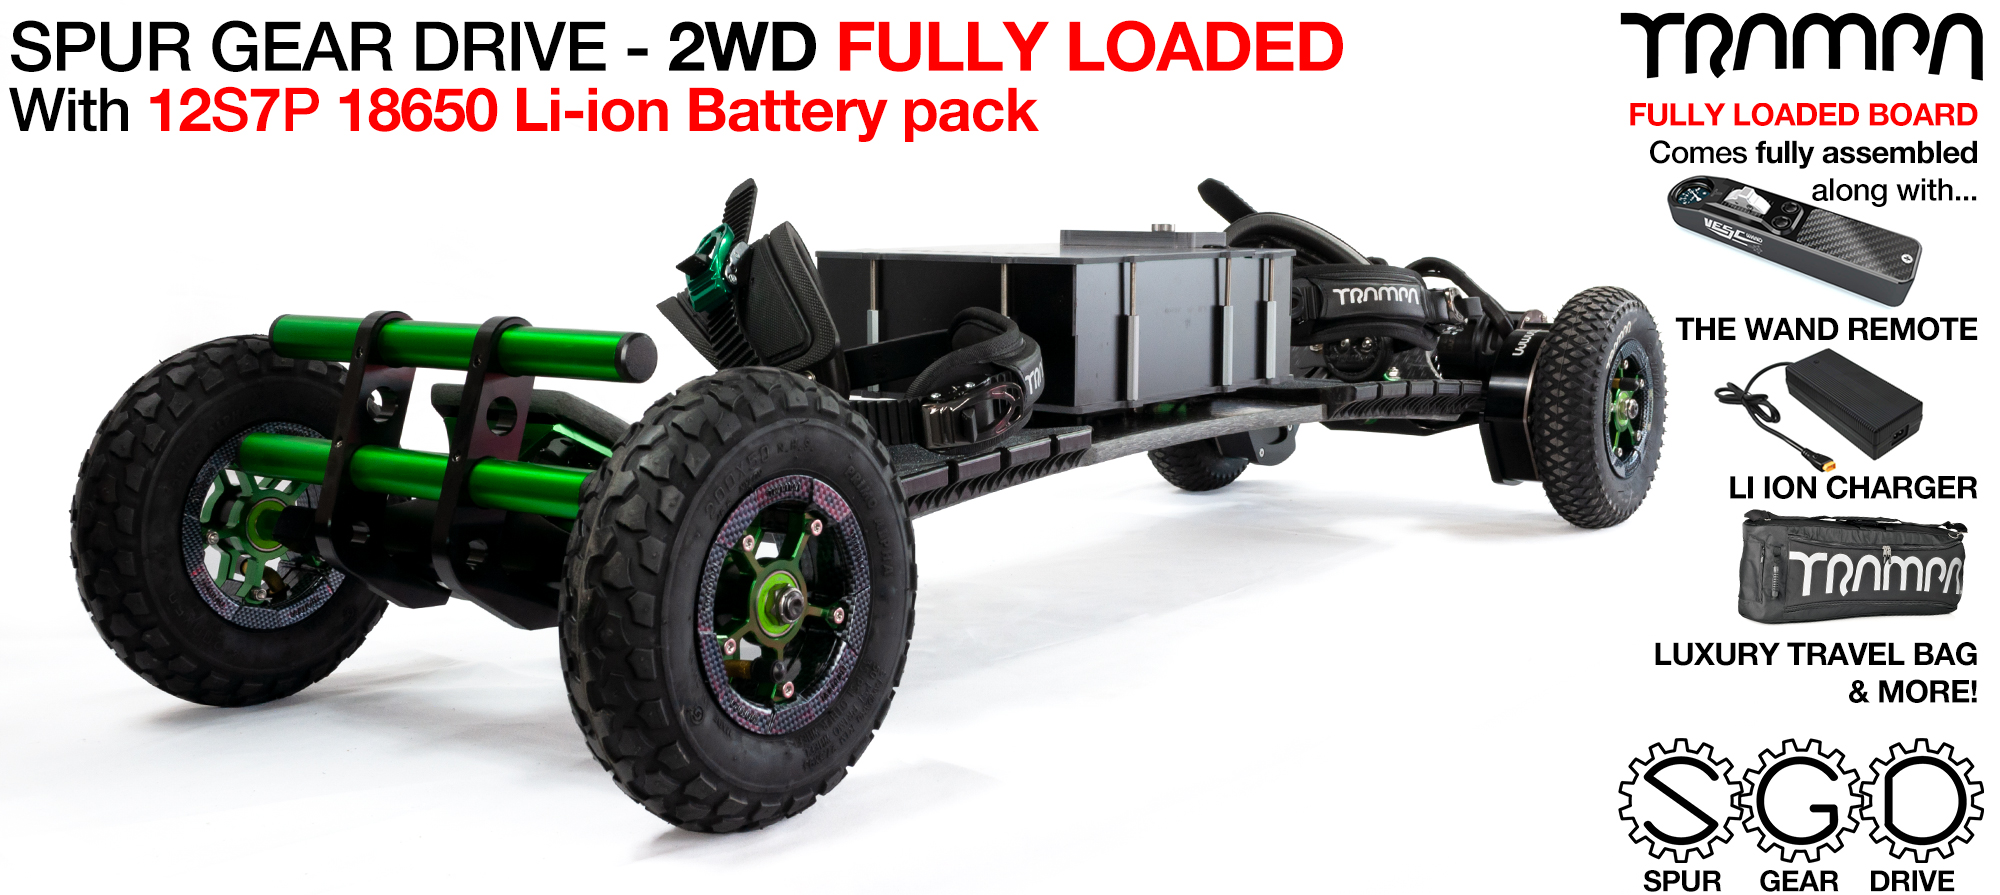 2WD SPUR GEAR DRIVE Electric Mountainboard - FULLY LOADED Battery Pack with 9 inch MEGASTARS on rear 8 inch Megastars on front, Mud-Pluggers supplied with The WAND, 12A Charger & Bull Bars as standard!!